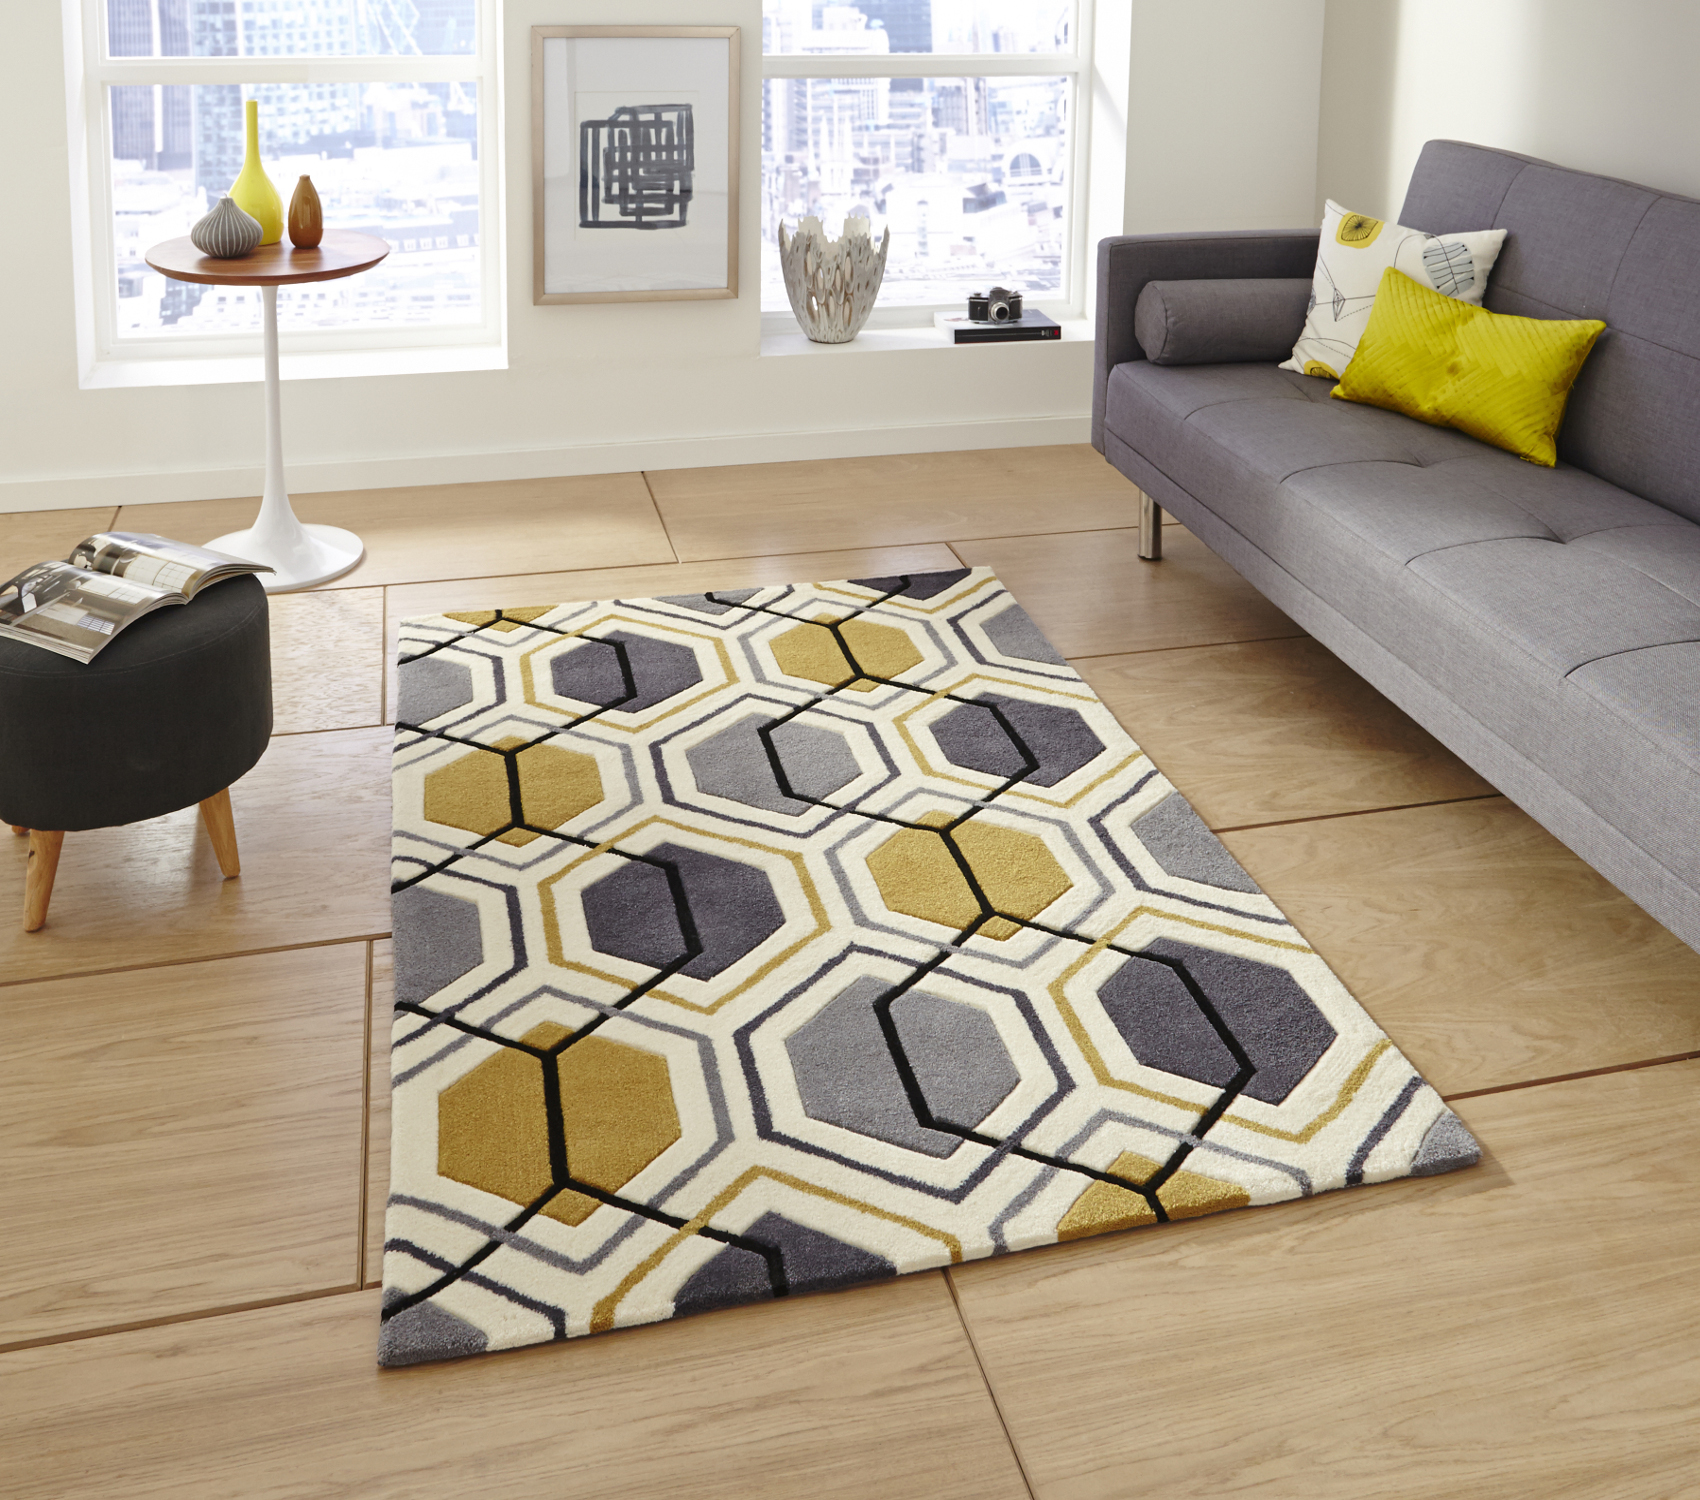 hong kong hexagon rug 100 acrylic hand tufted large geometric